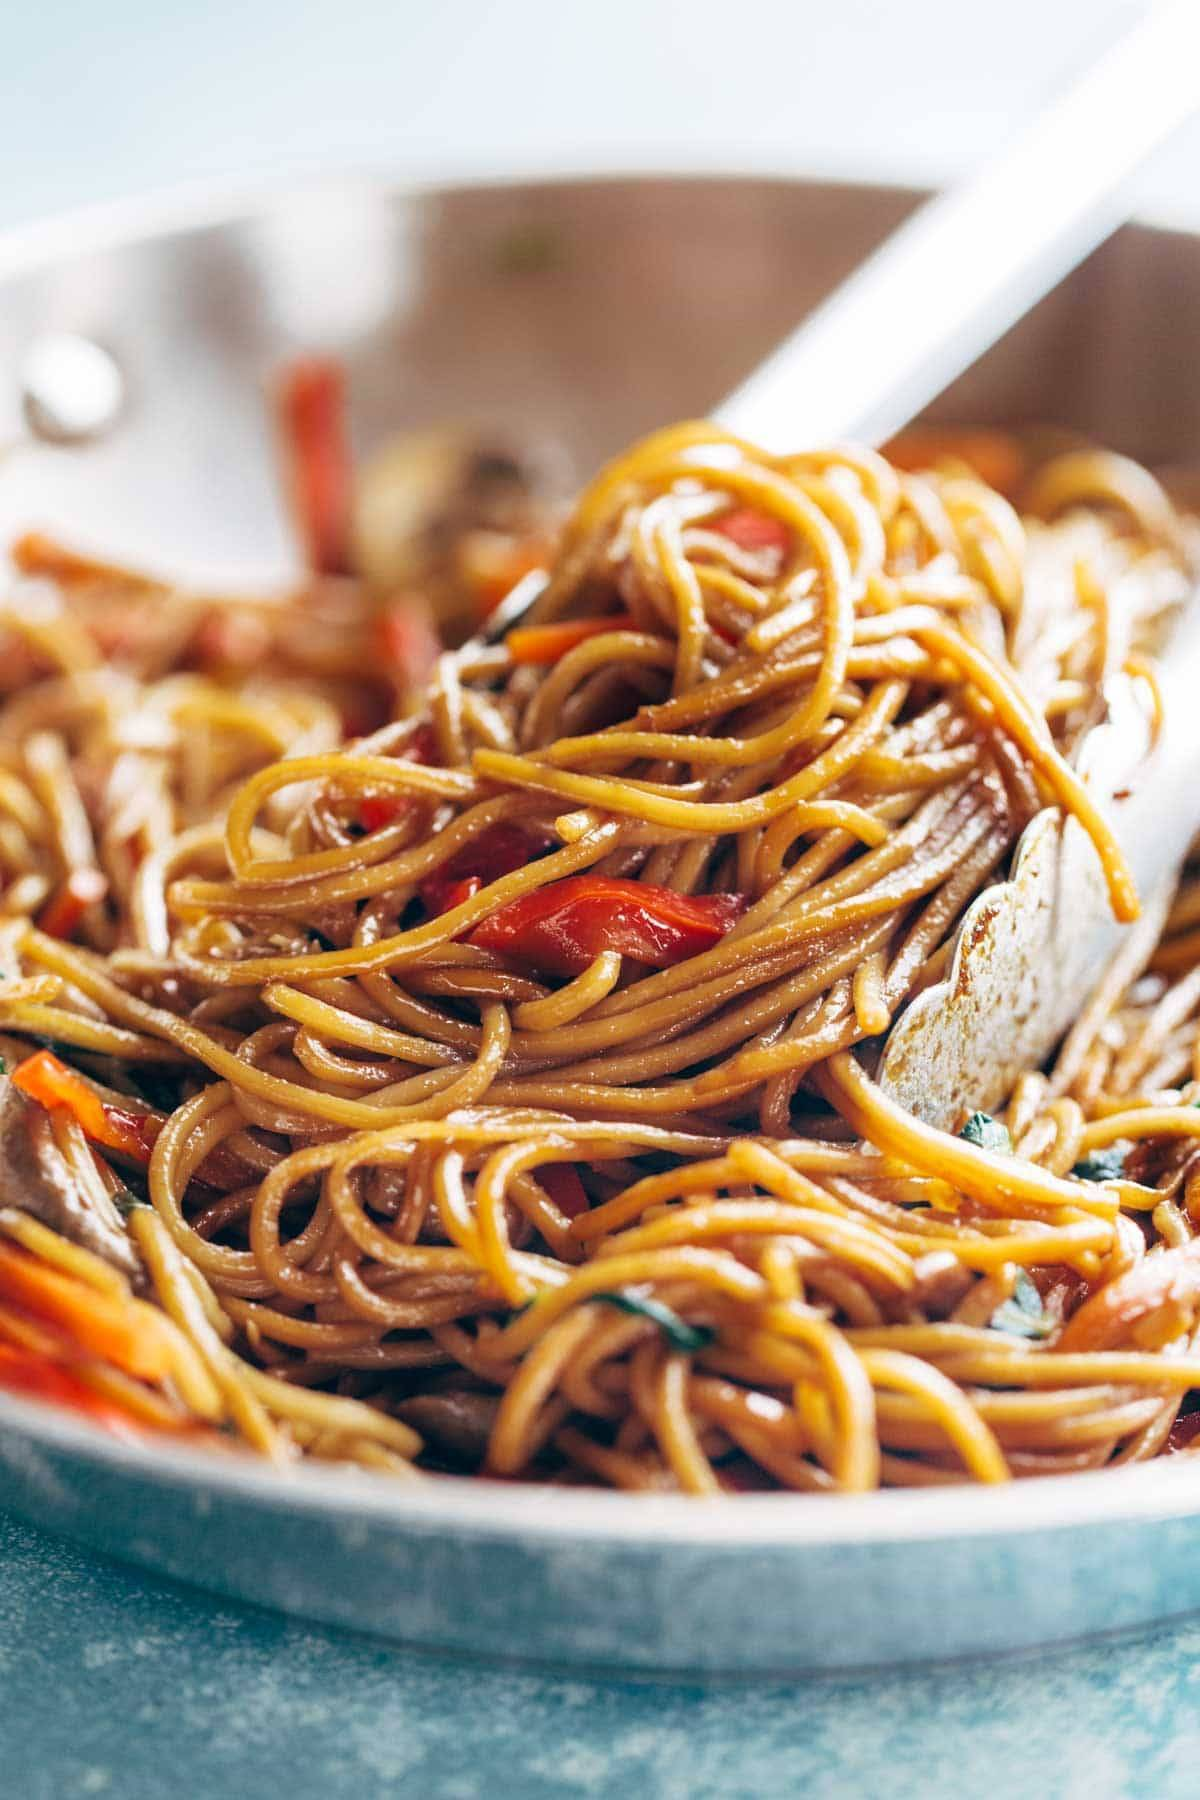 15 Minute Lo Mein! made with just soy sauce, sesame oil, a pinch of sugar, noodles, and any veggies or protein you like. SO YUMMY! vegan, vegetarian.| pinchofyum.com